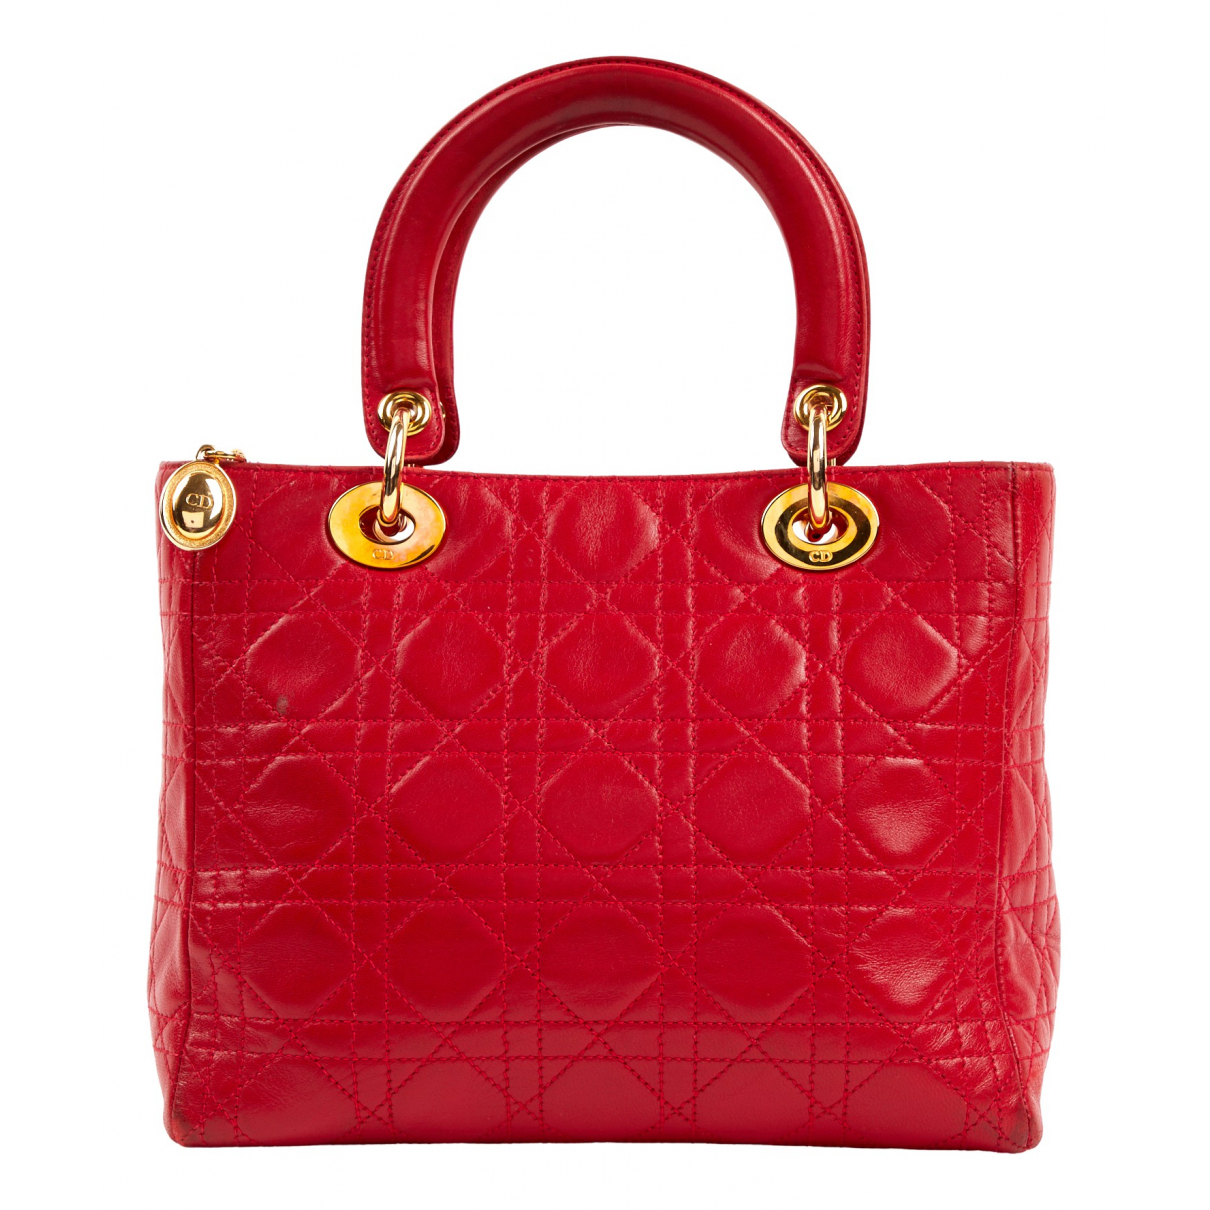 Dior Lady Dior Red Leather handbag for Women \N